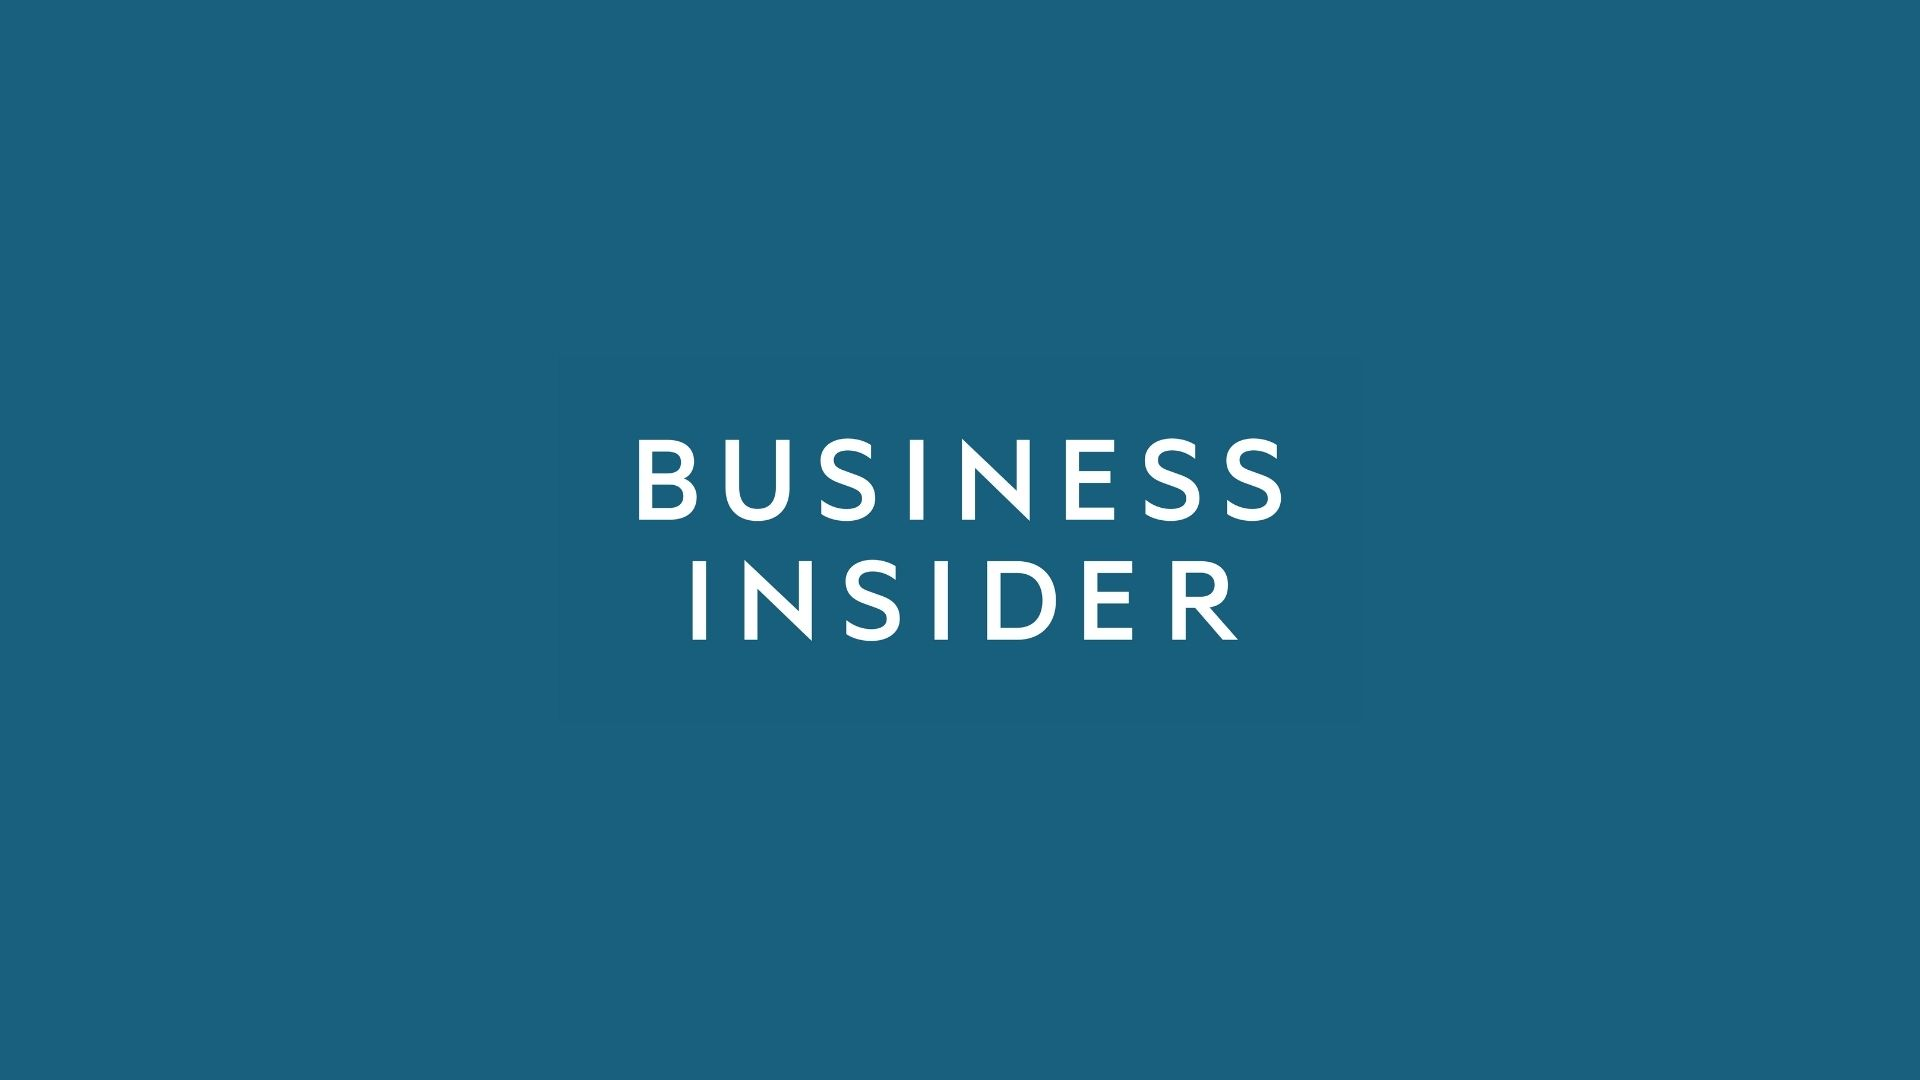 Business Insider: SPAC issuance is down 90% from March as retail interest disappears. A SPAC arbitrage investor breaks down why that means opportunity for enterprising investors — and shares 3 top picks on his radar.